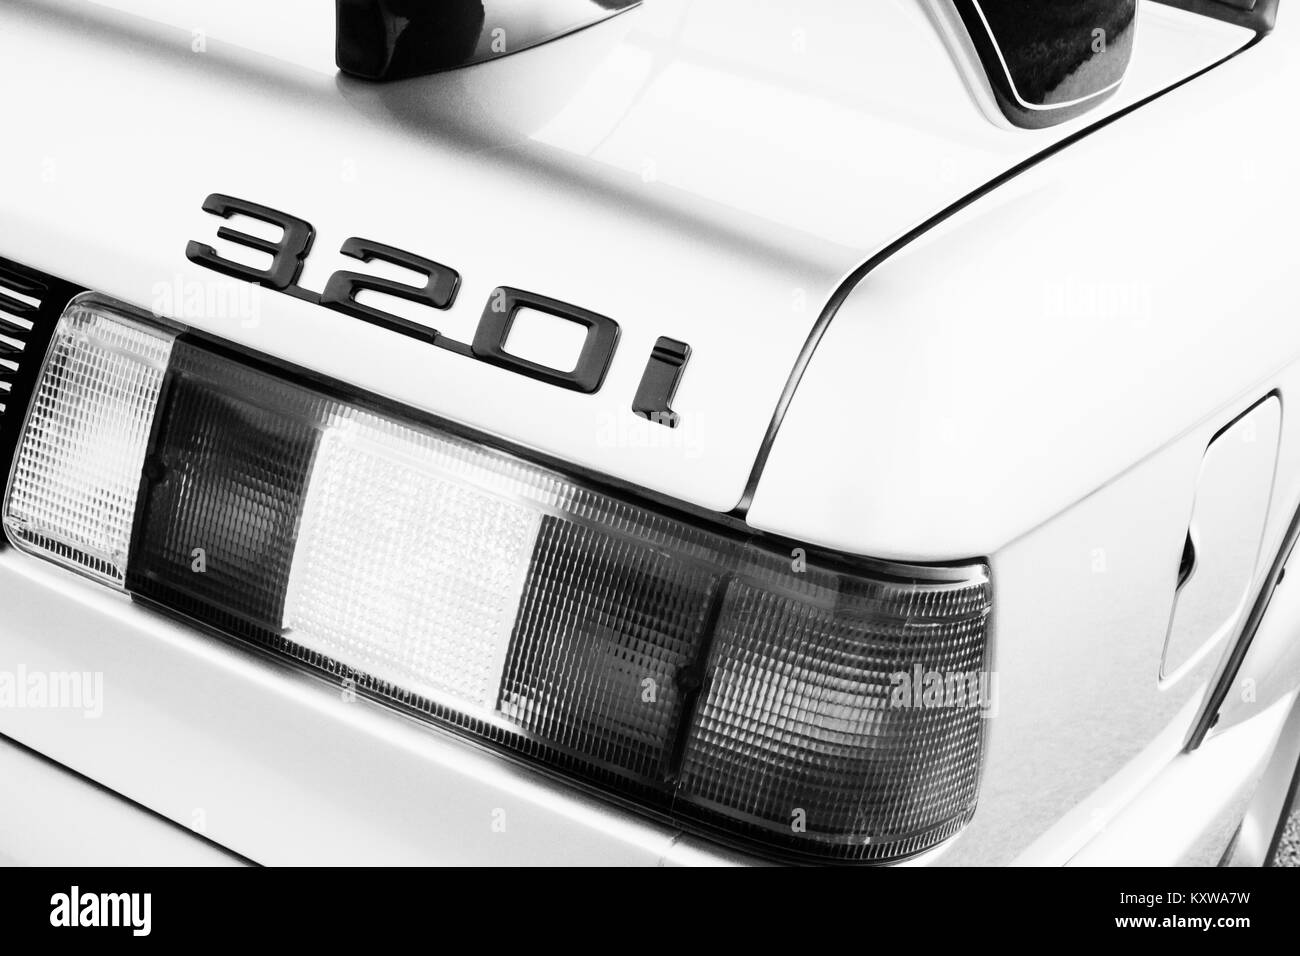 German Sports Car - Stock Image